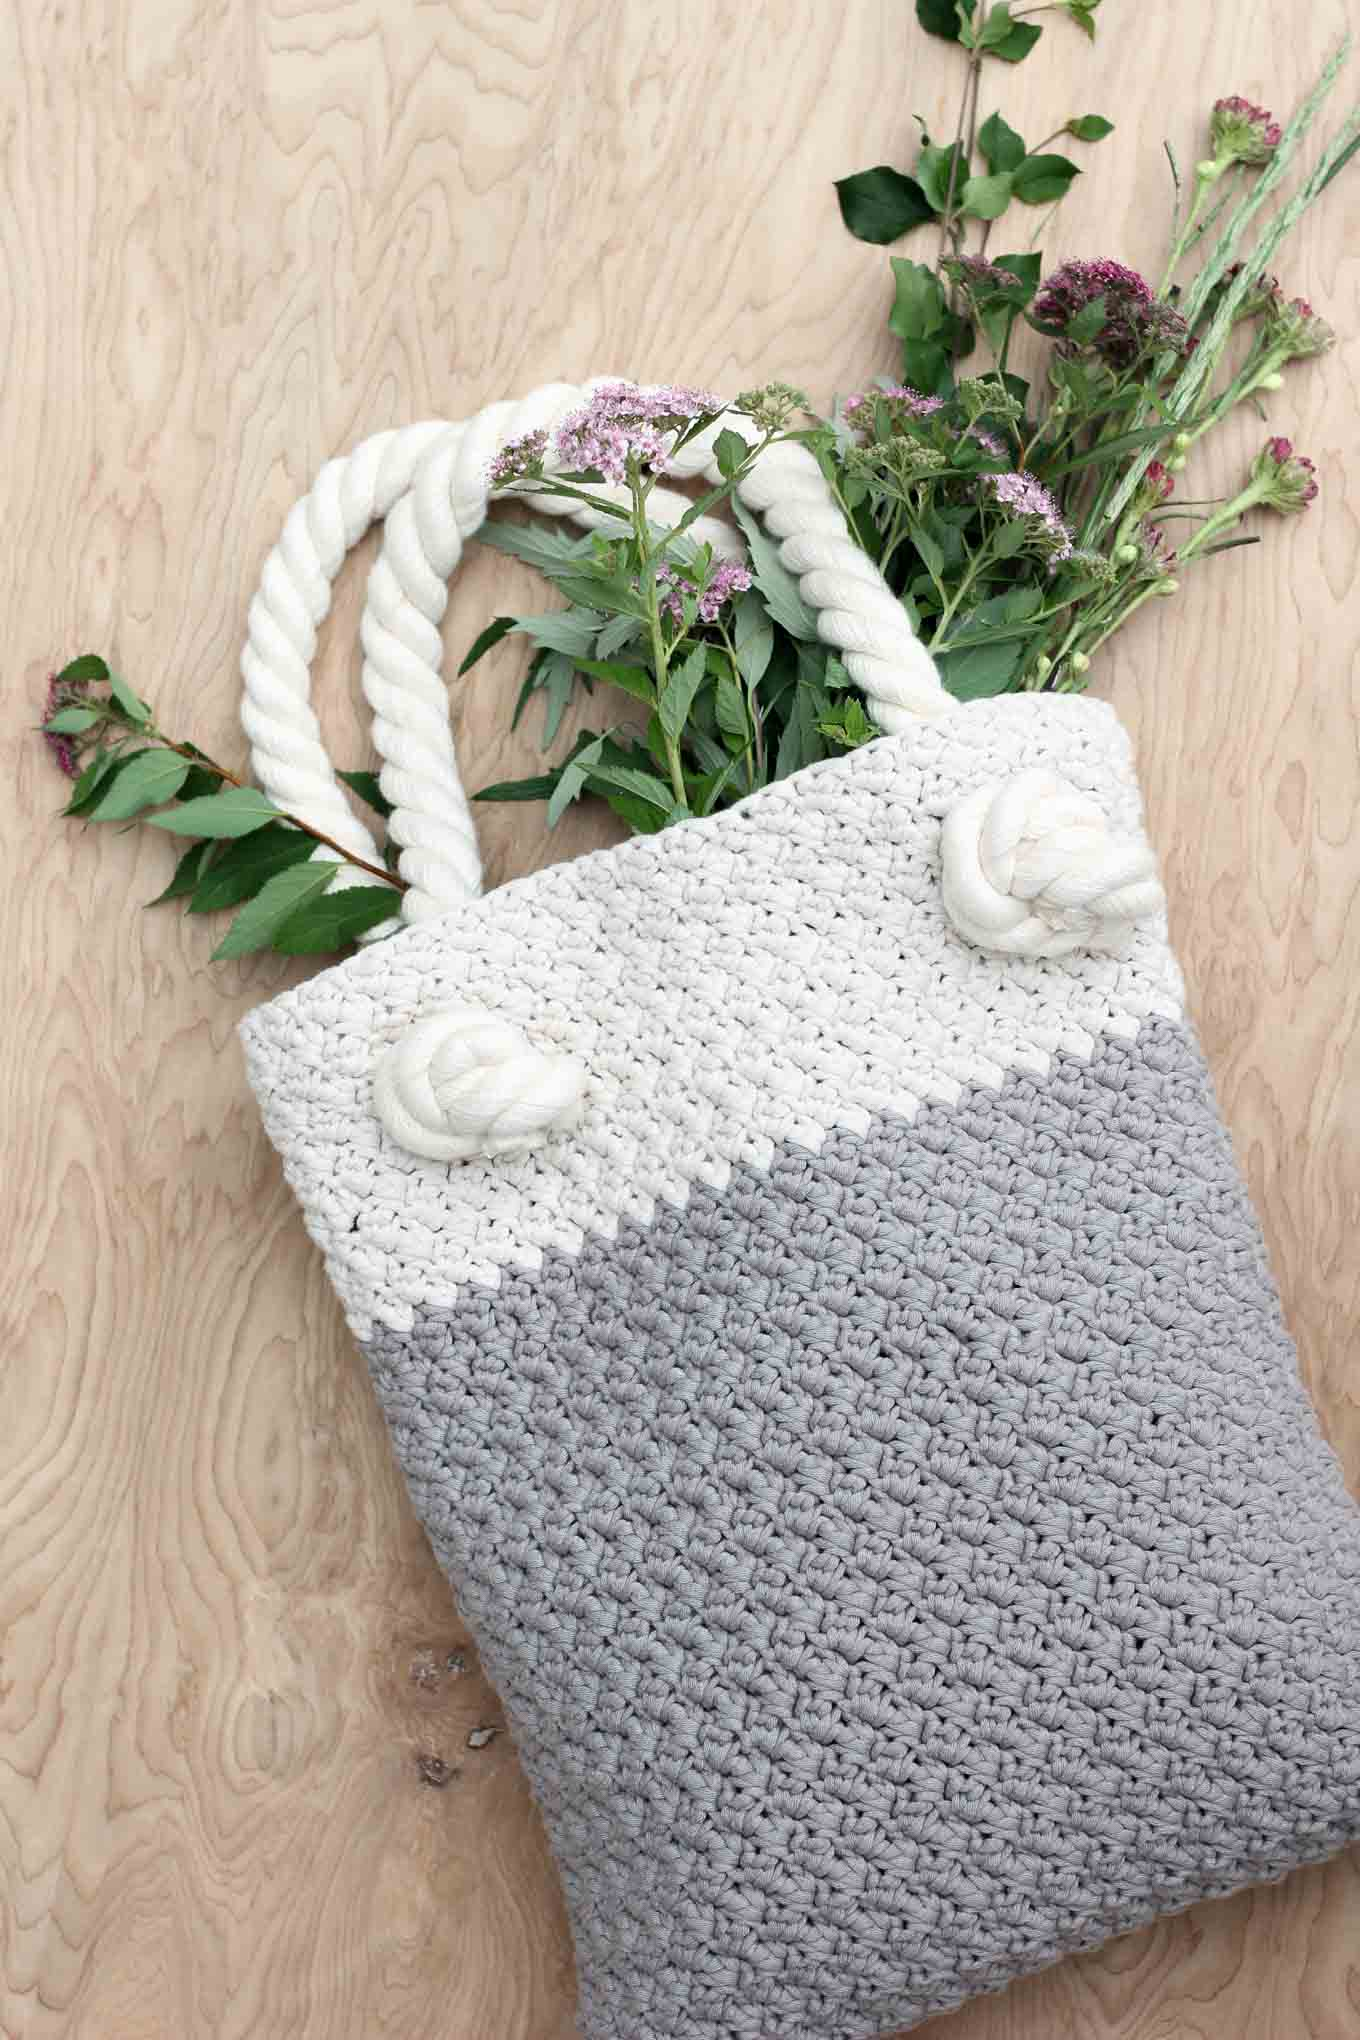 Crochet Purse Patterns For Beginners : the free Suzette crochet bag pattern for fall. Pair this simple b...